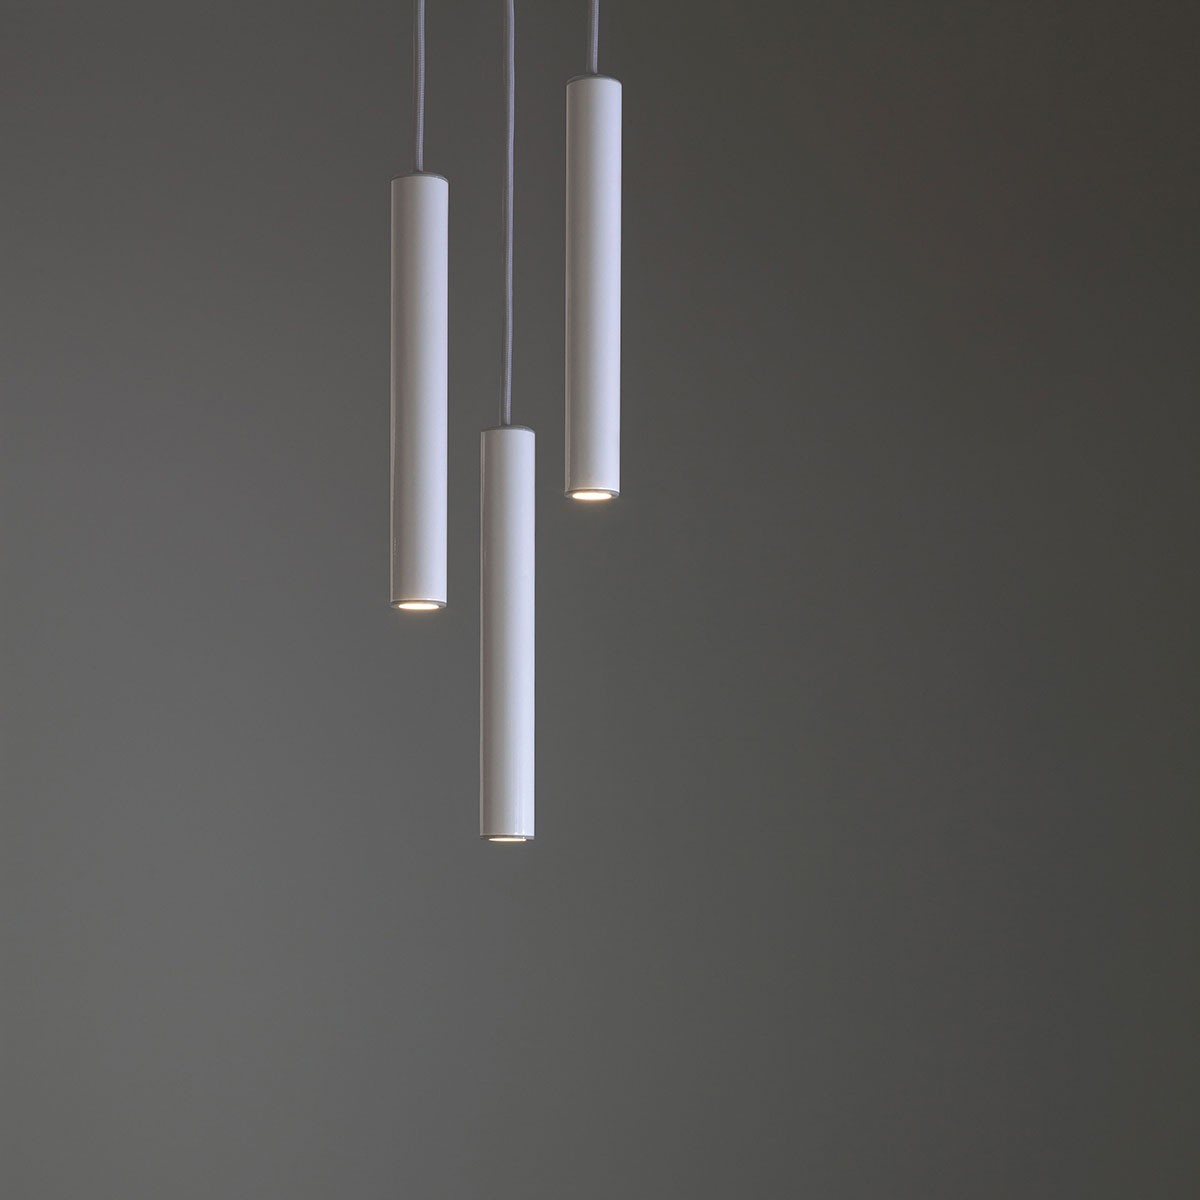 Astro Ariana White LED Pendant Light At UK Electrical